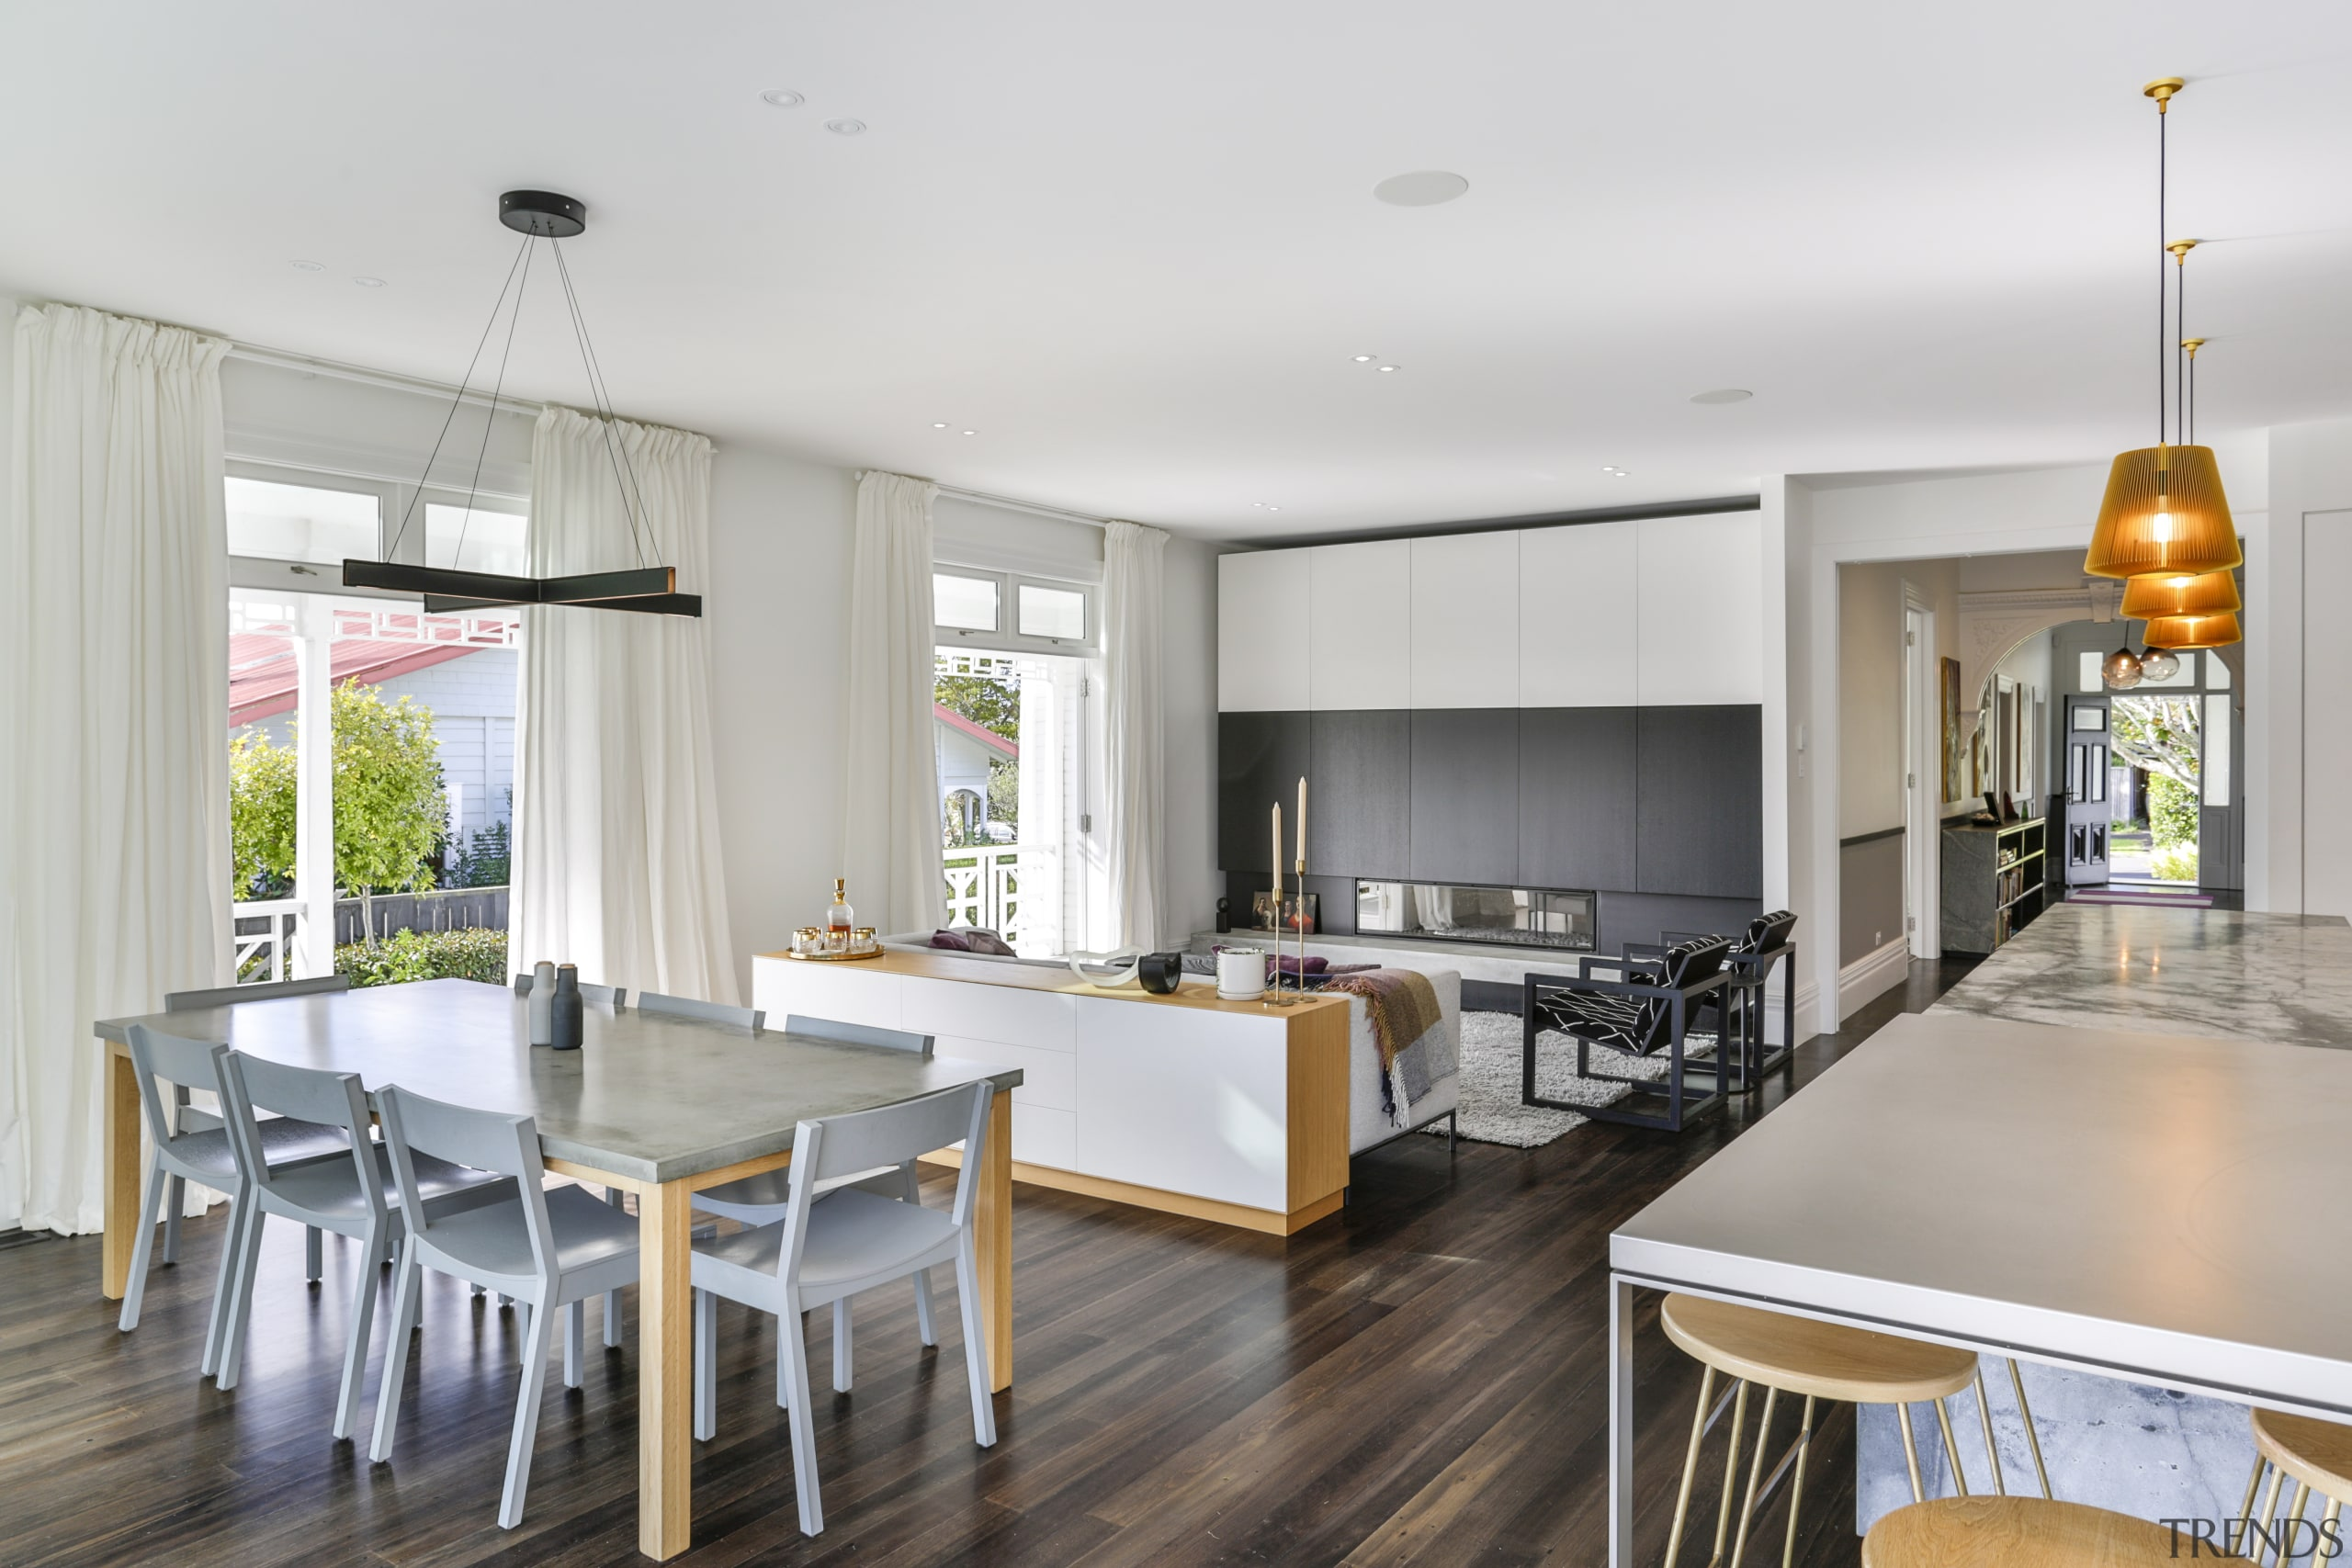 On this home renovation, he new living area dining room, interior design, dining table, kitchen, timber floor, living room, Matt Brew